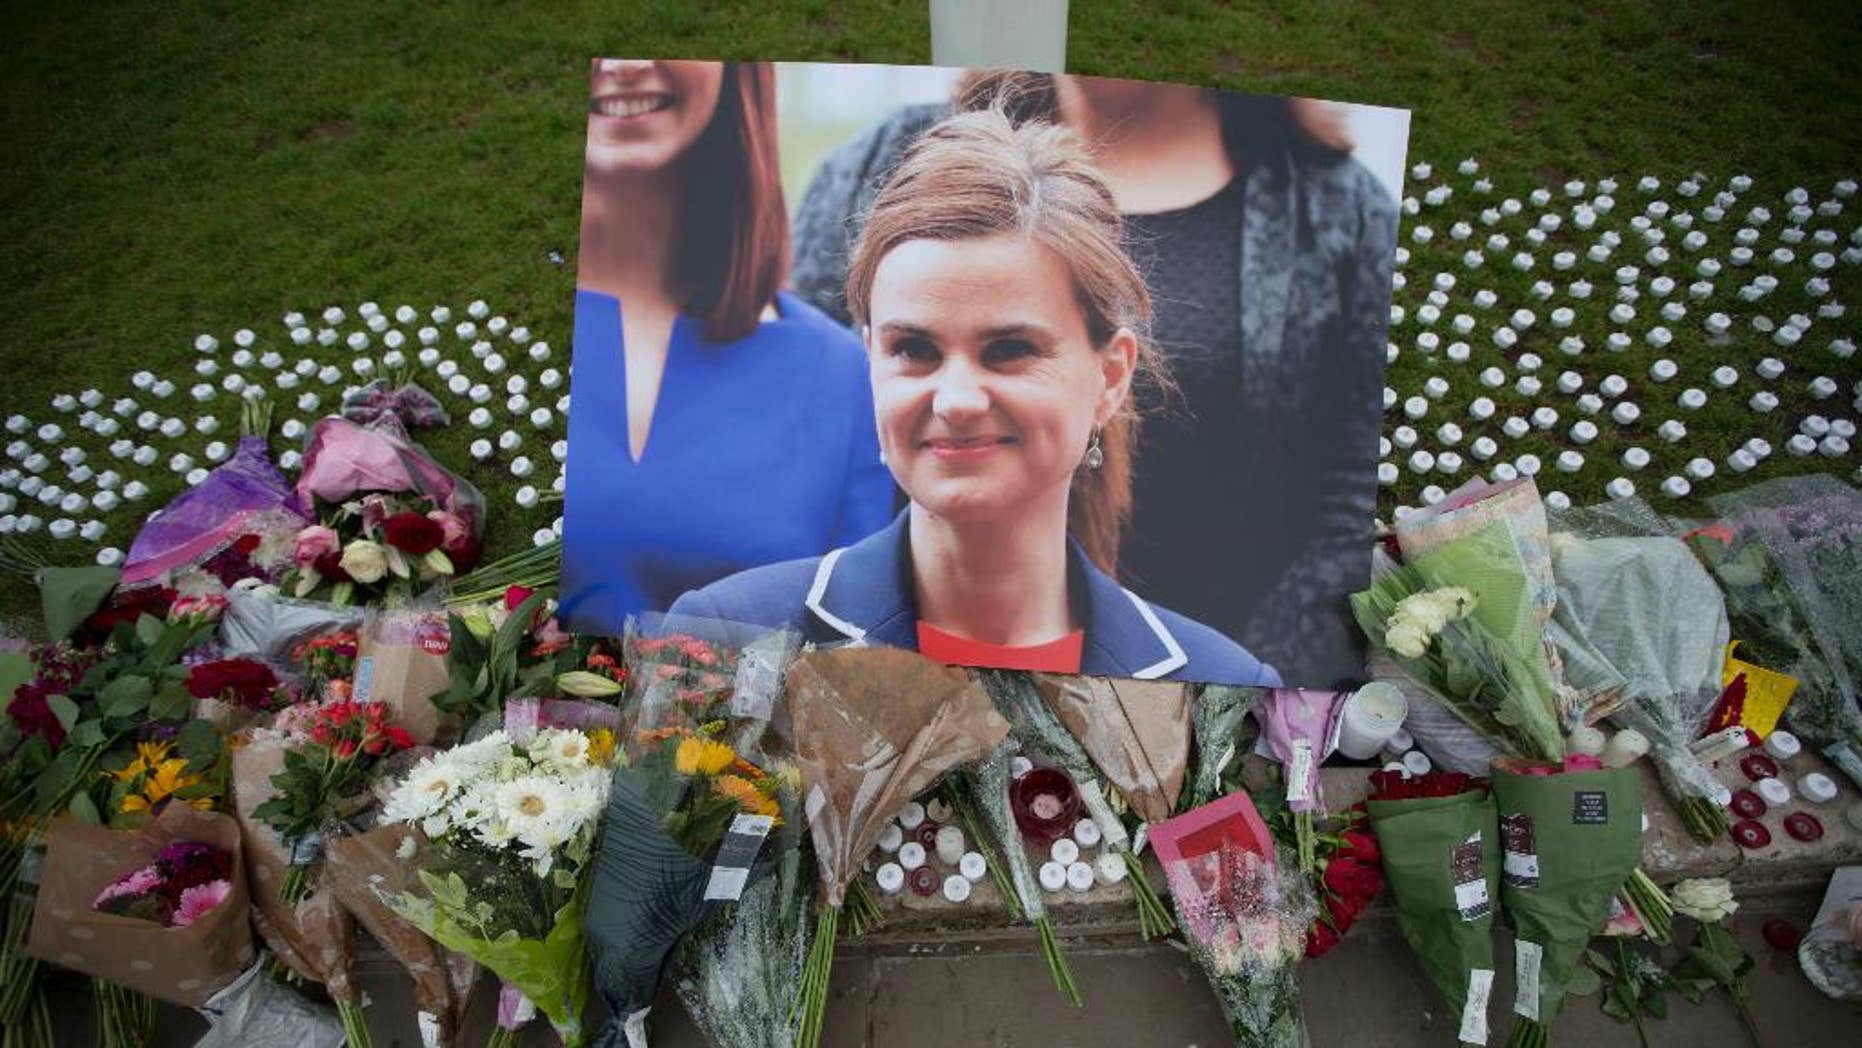 An image and floral tributes for Jo Cox on Parliament Square, outside the House of Parliament in London.